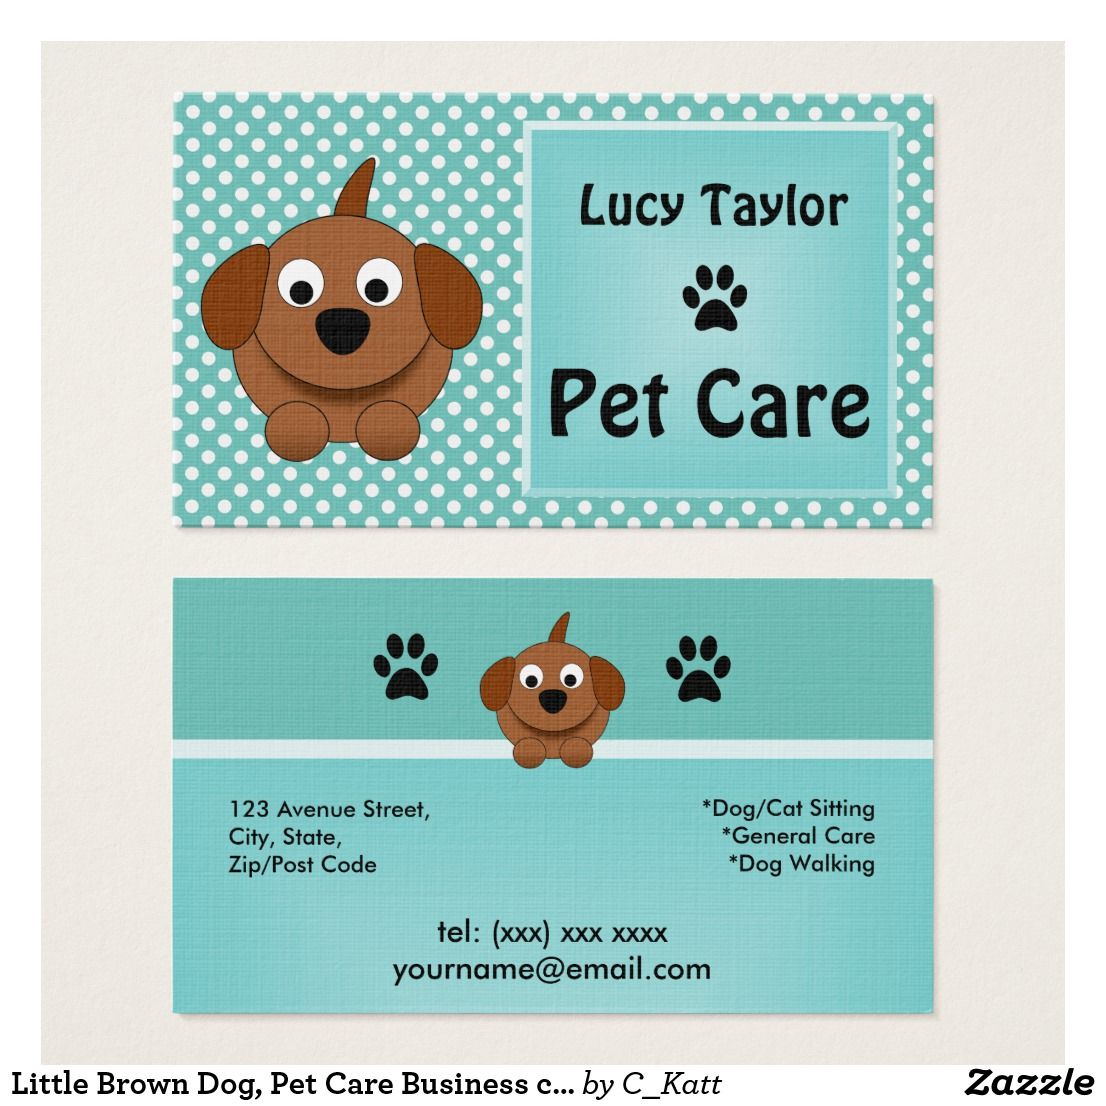 Little Brown Dog, Pet Care Business cards | Pet care and Business cards